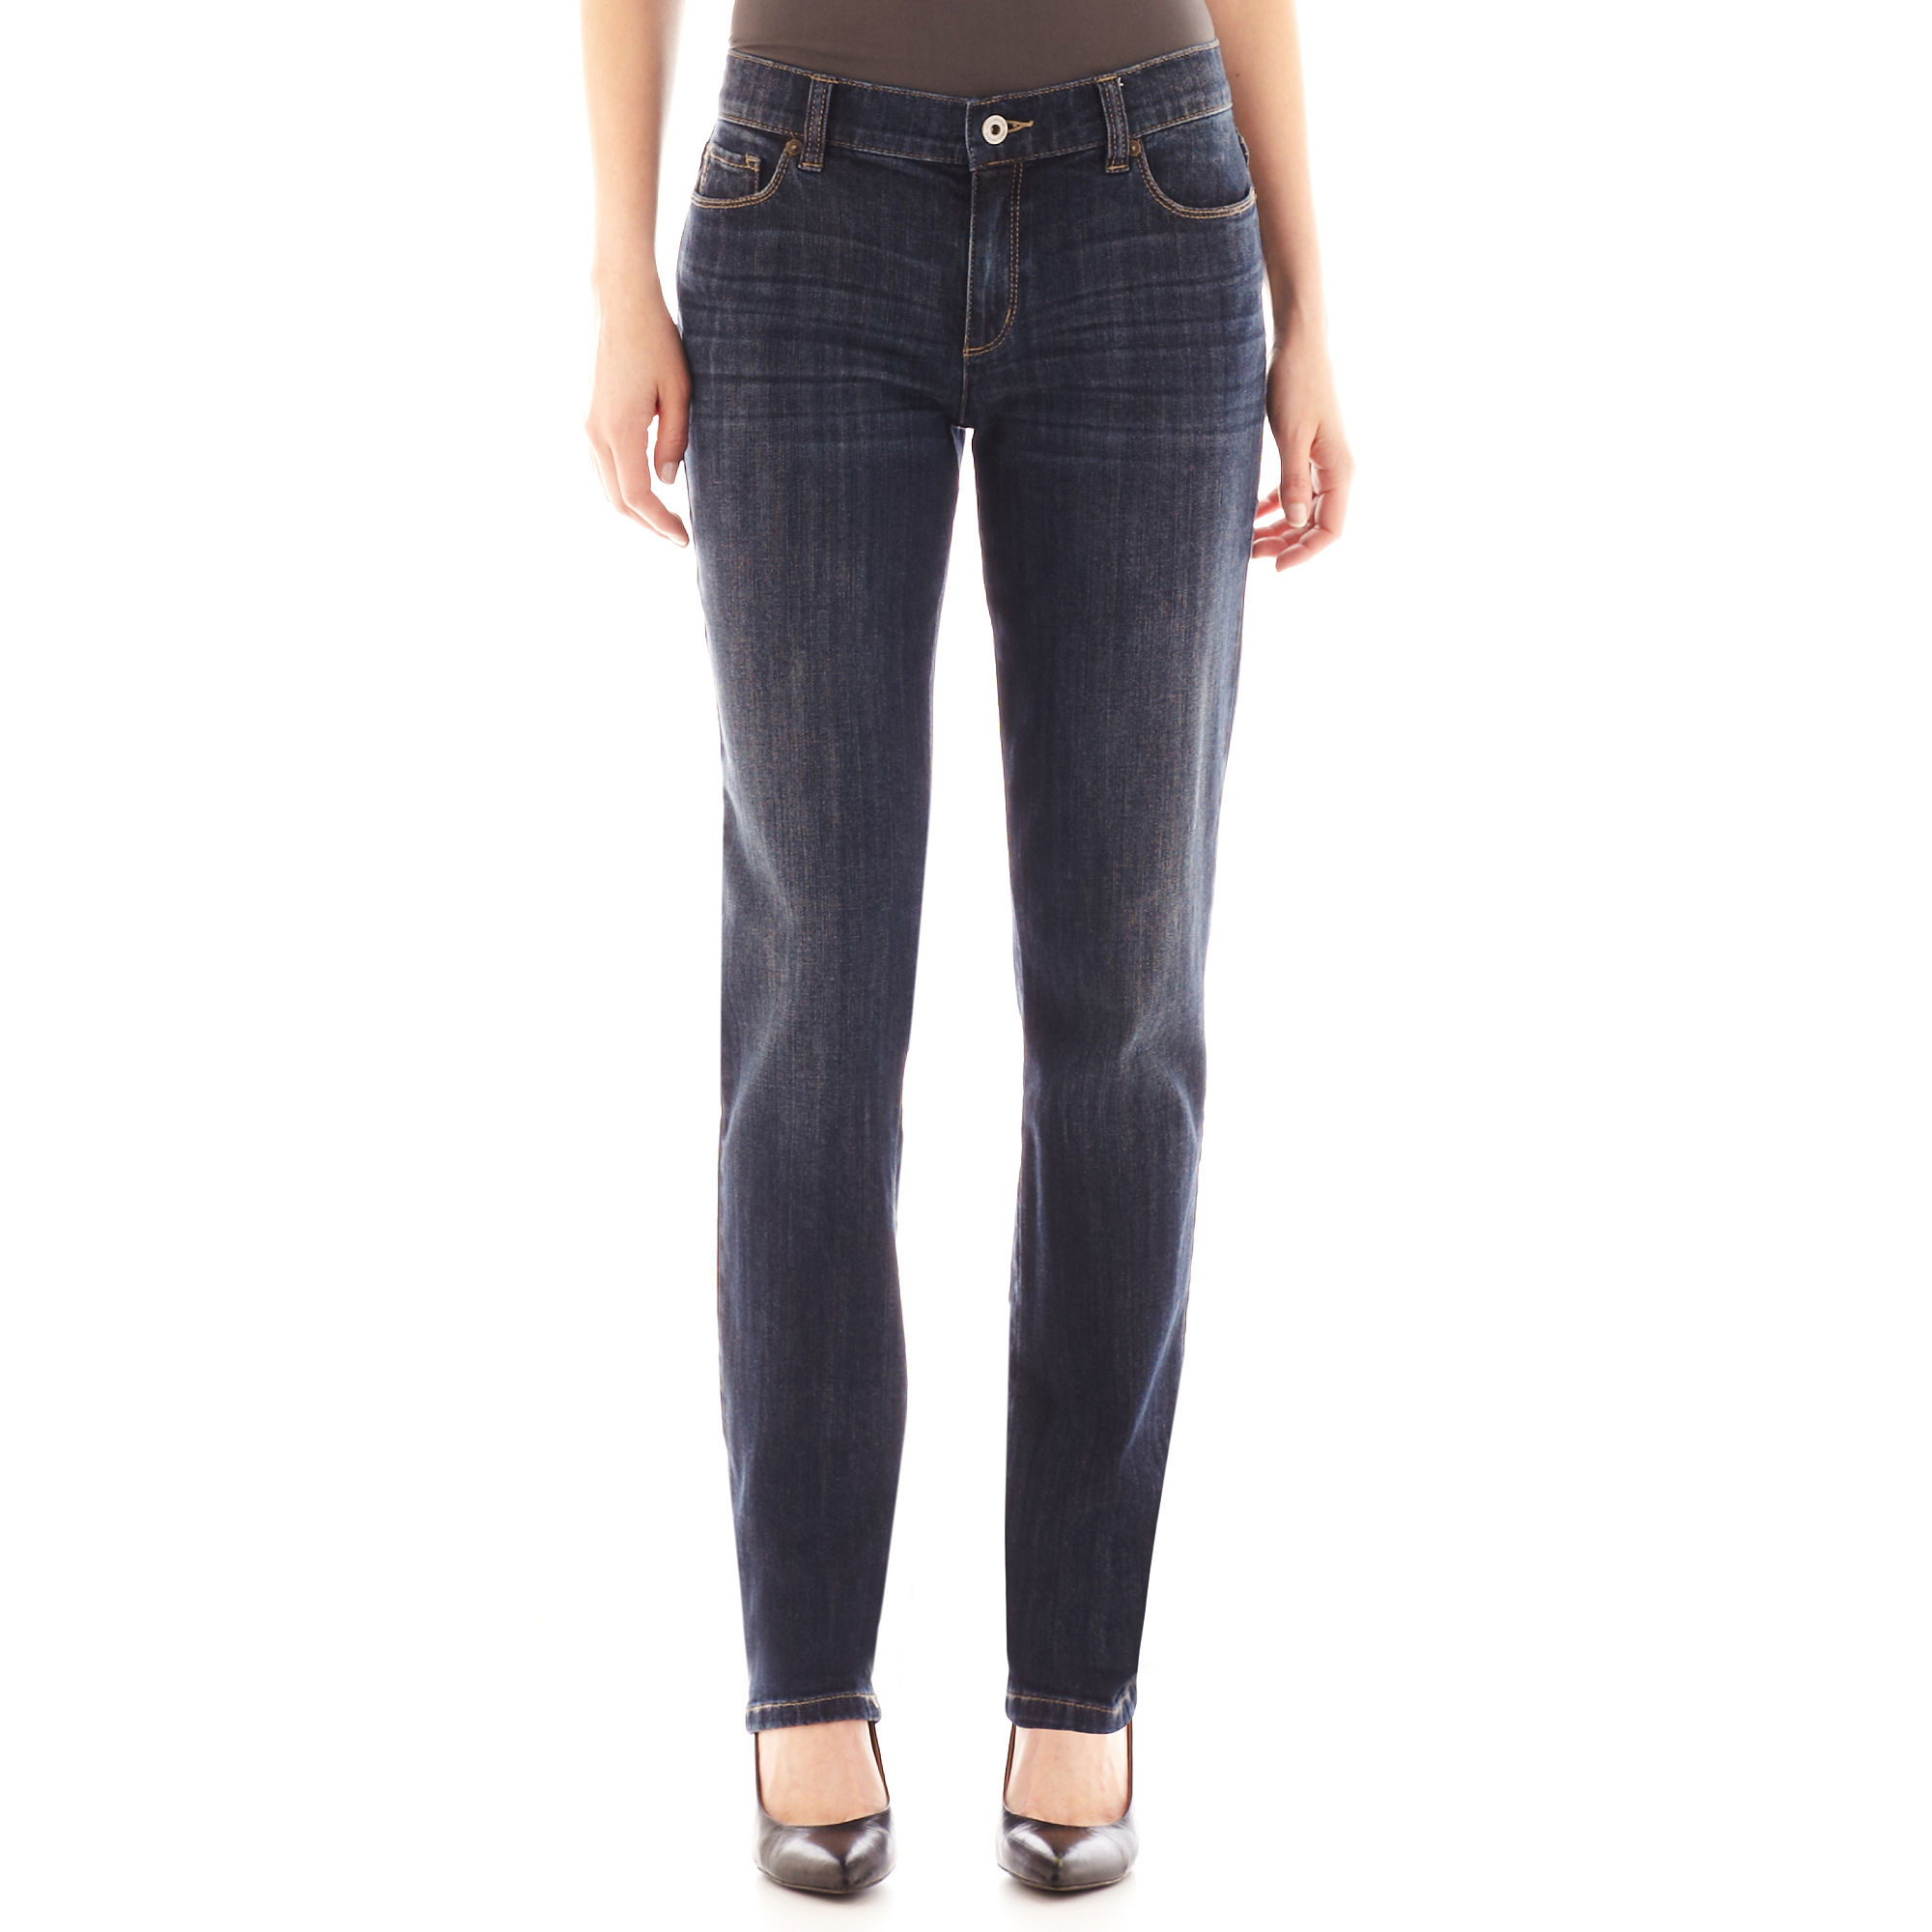 Liz Claiborne City-Fit Boyfriend Skinny Jeans - Tall